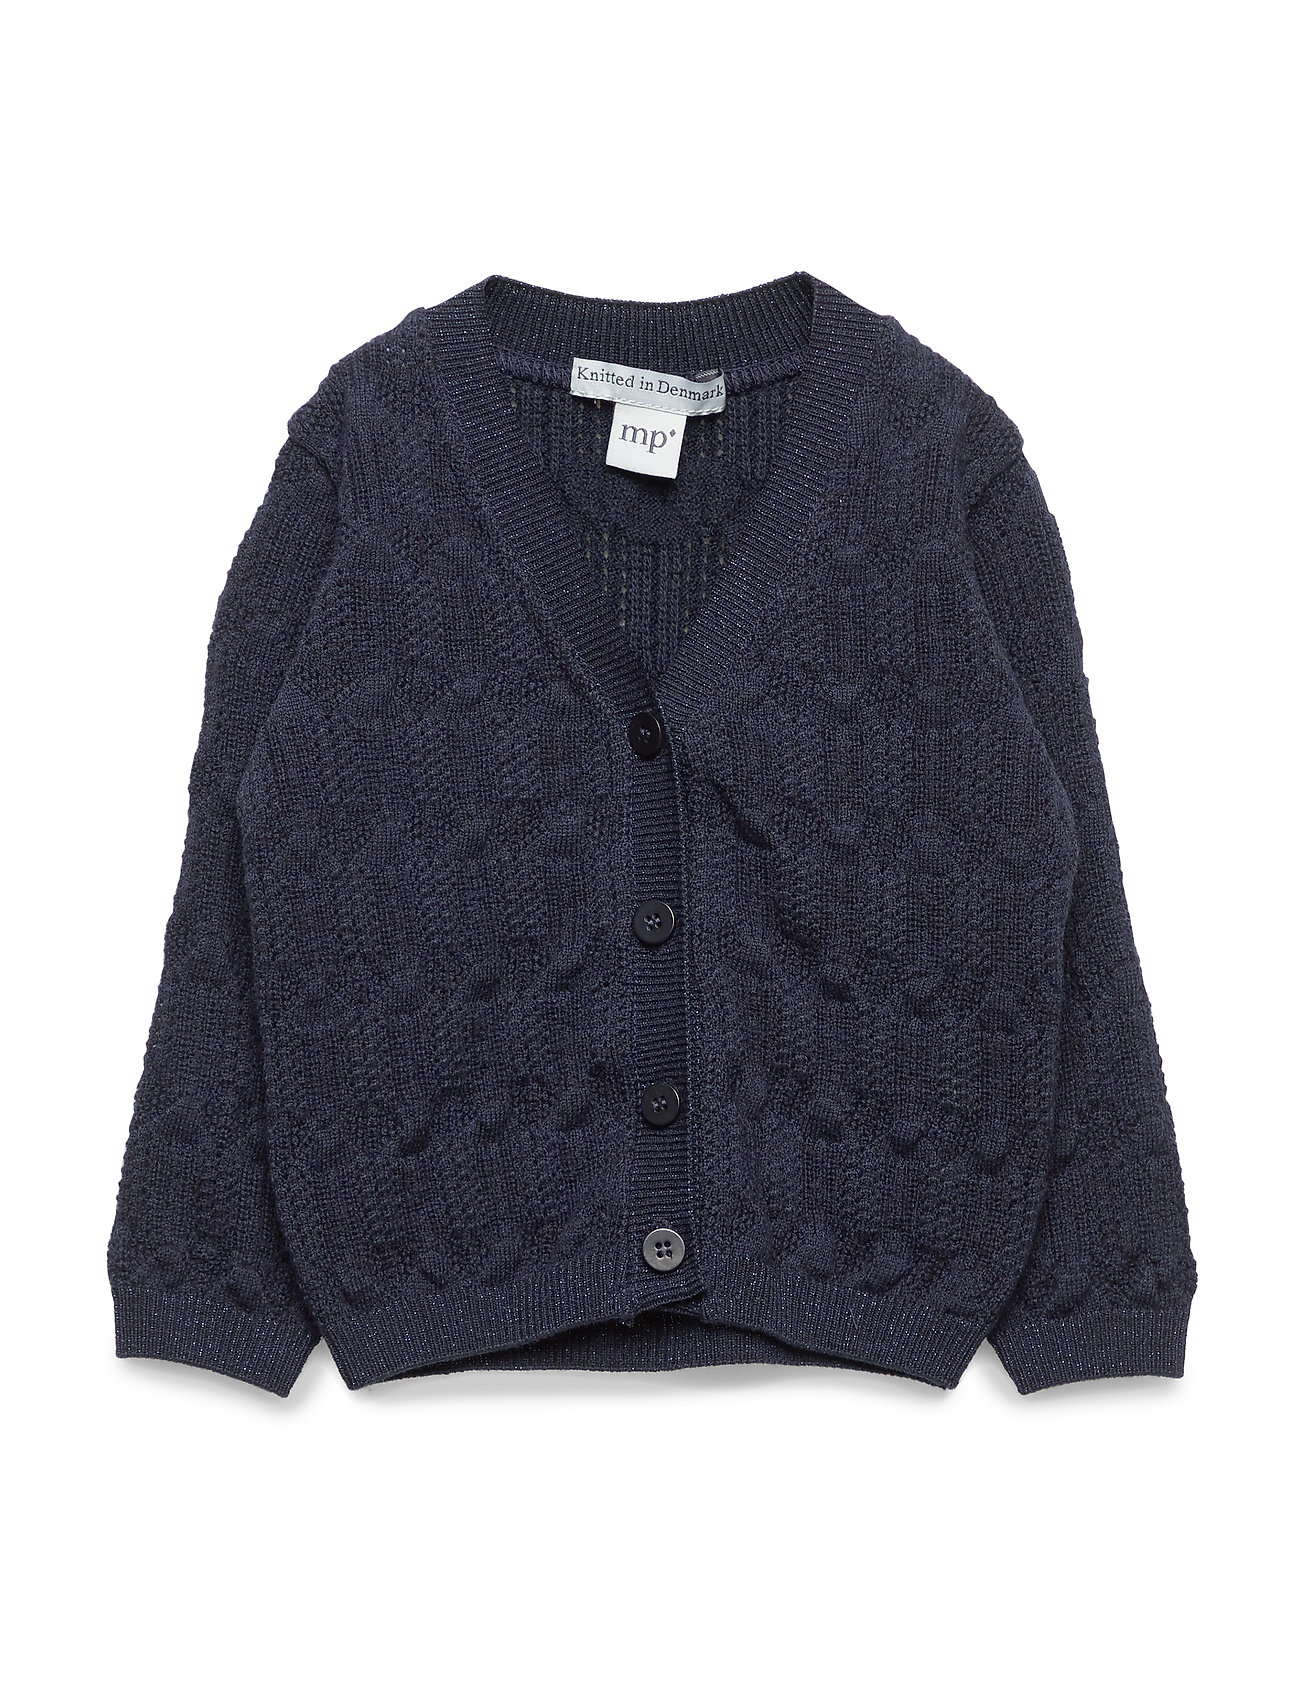 mp Denmark GIRLS CARDIGAN - NAVY